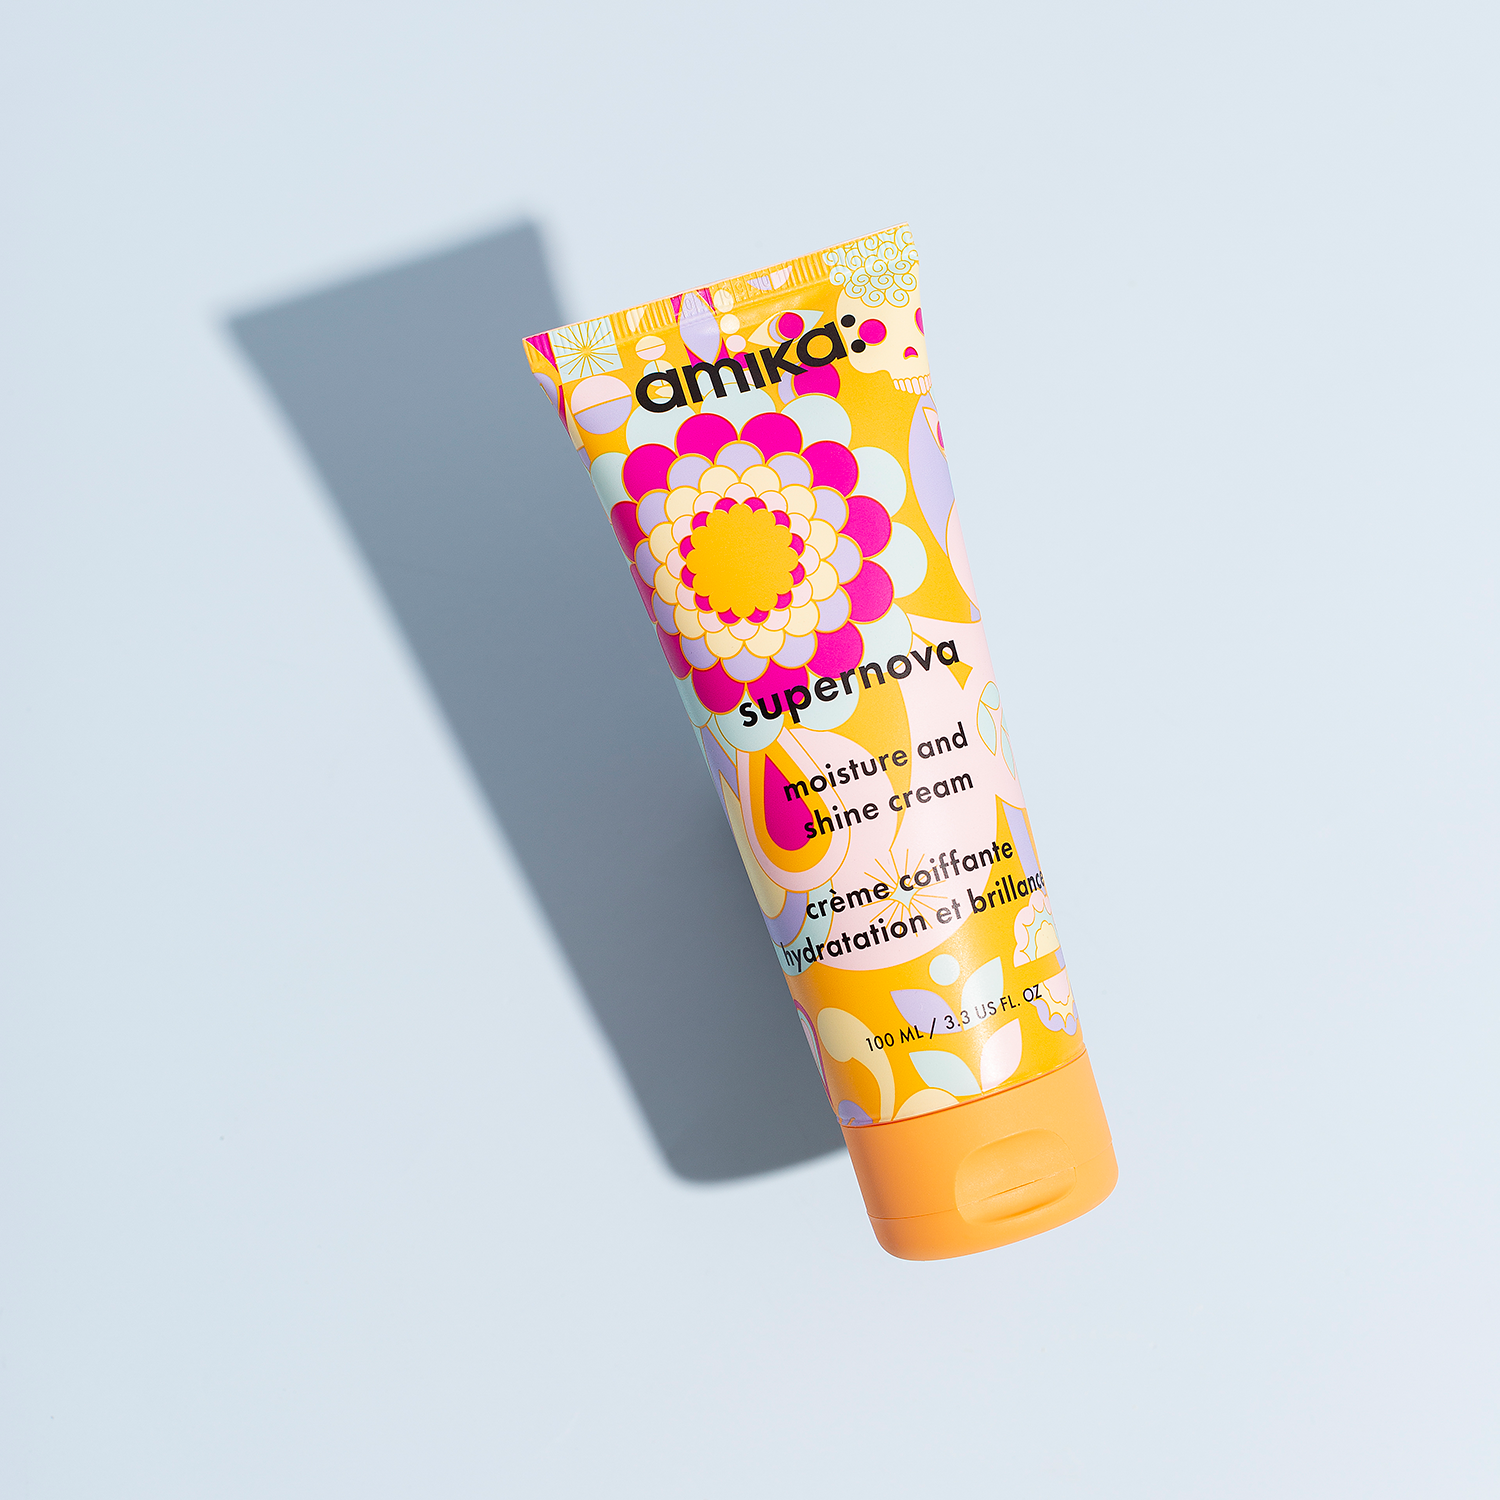 supernova moisture and shine cream | amika